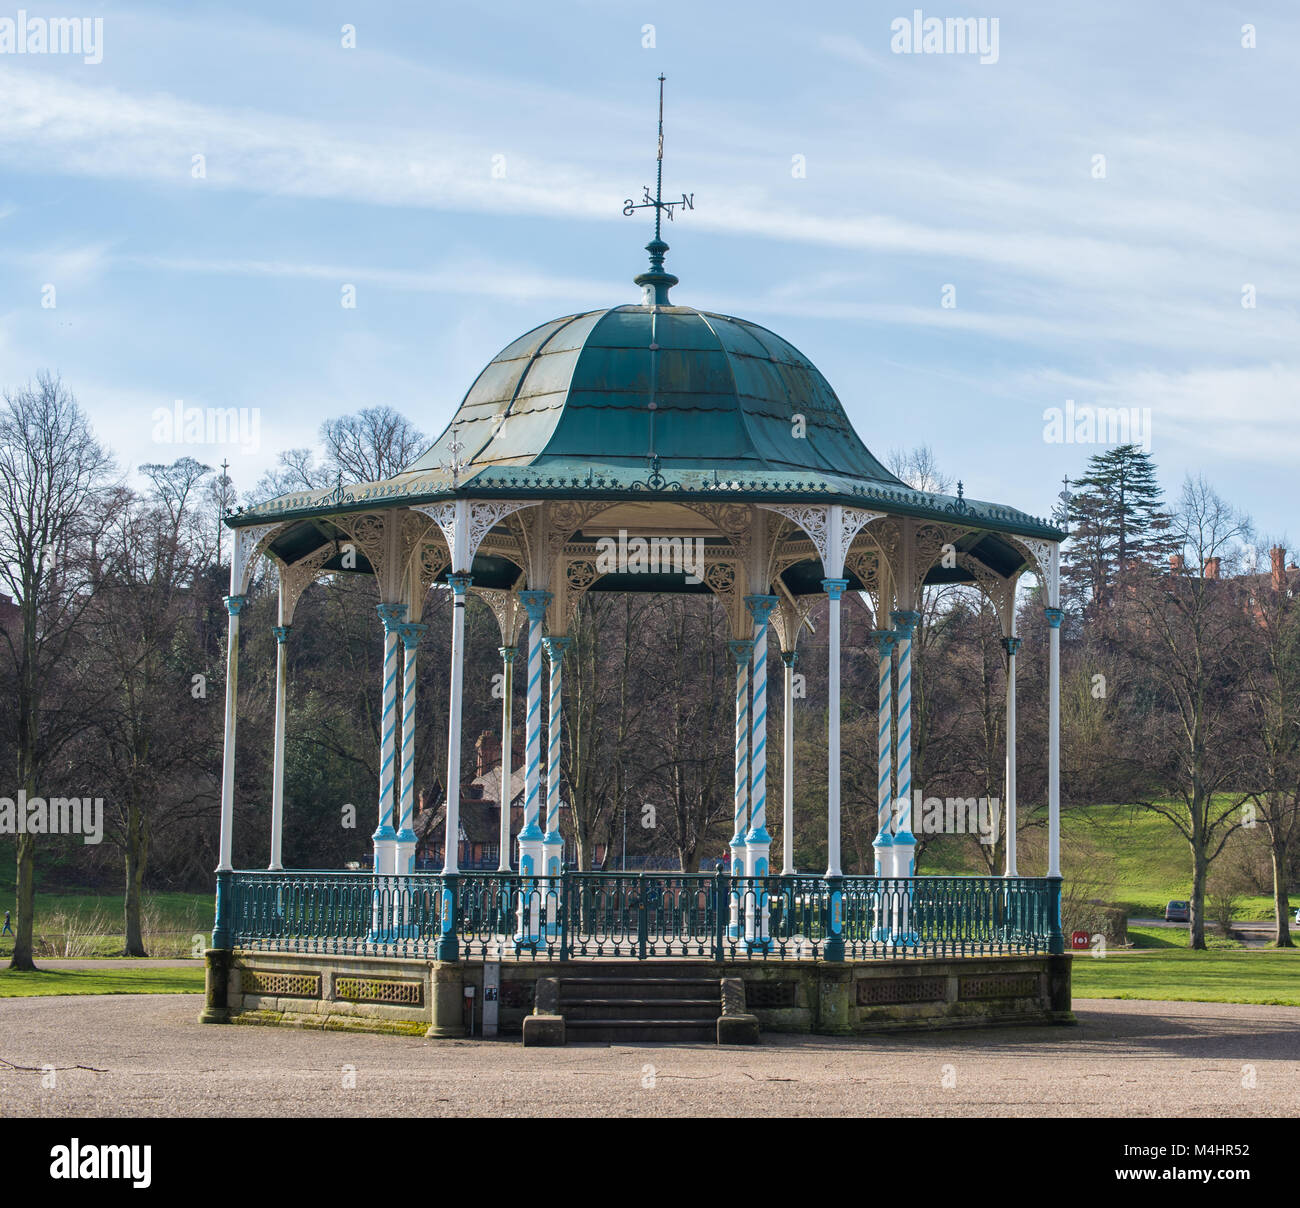 An old bandstand in the heart of The Quarry in Shrewsbury, UK - Stock Image